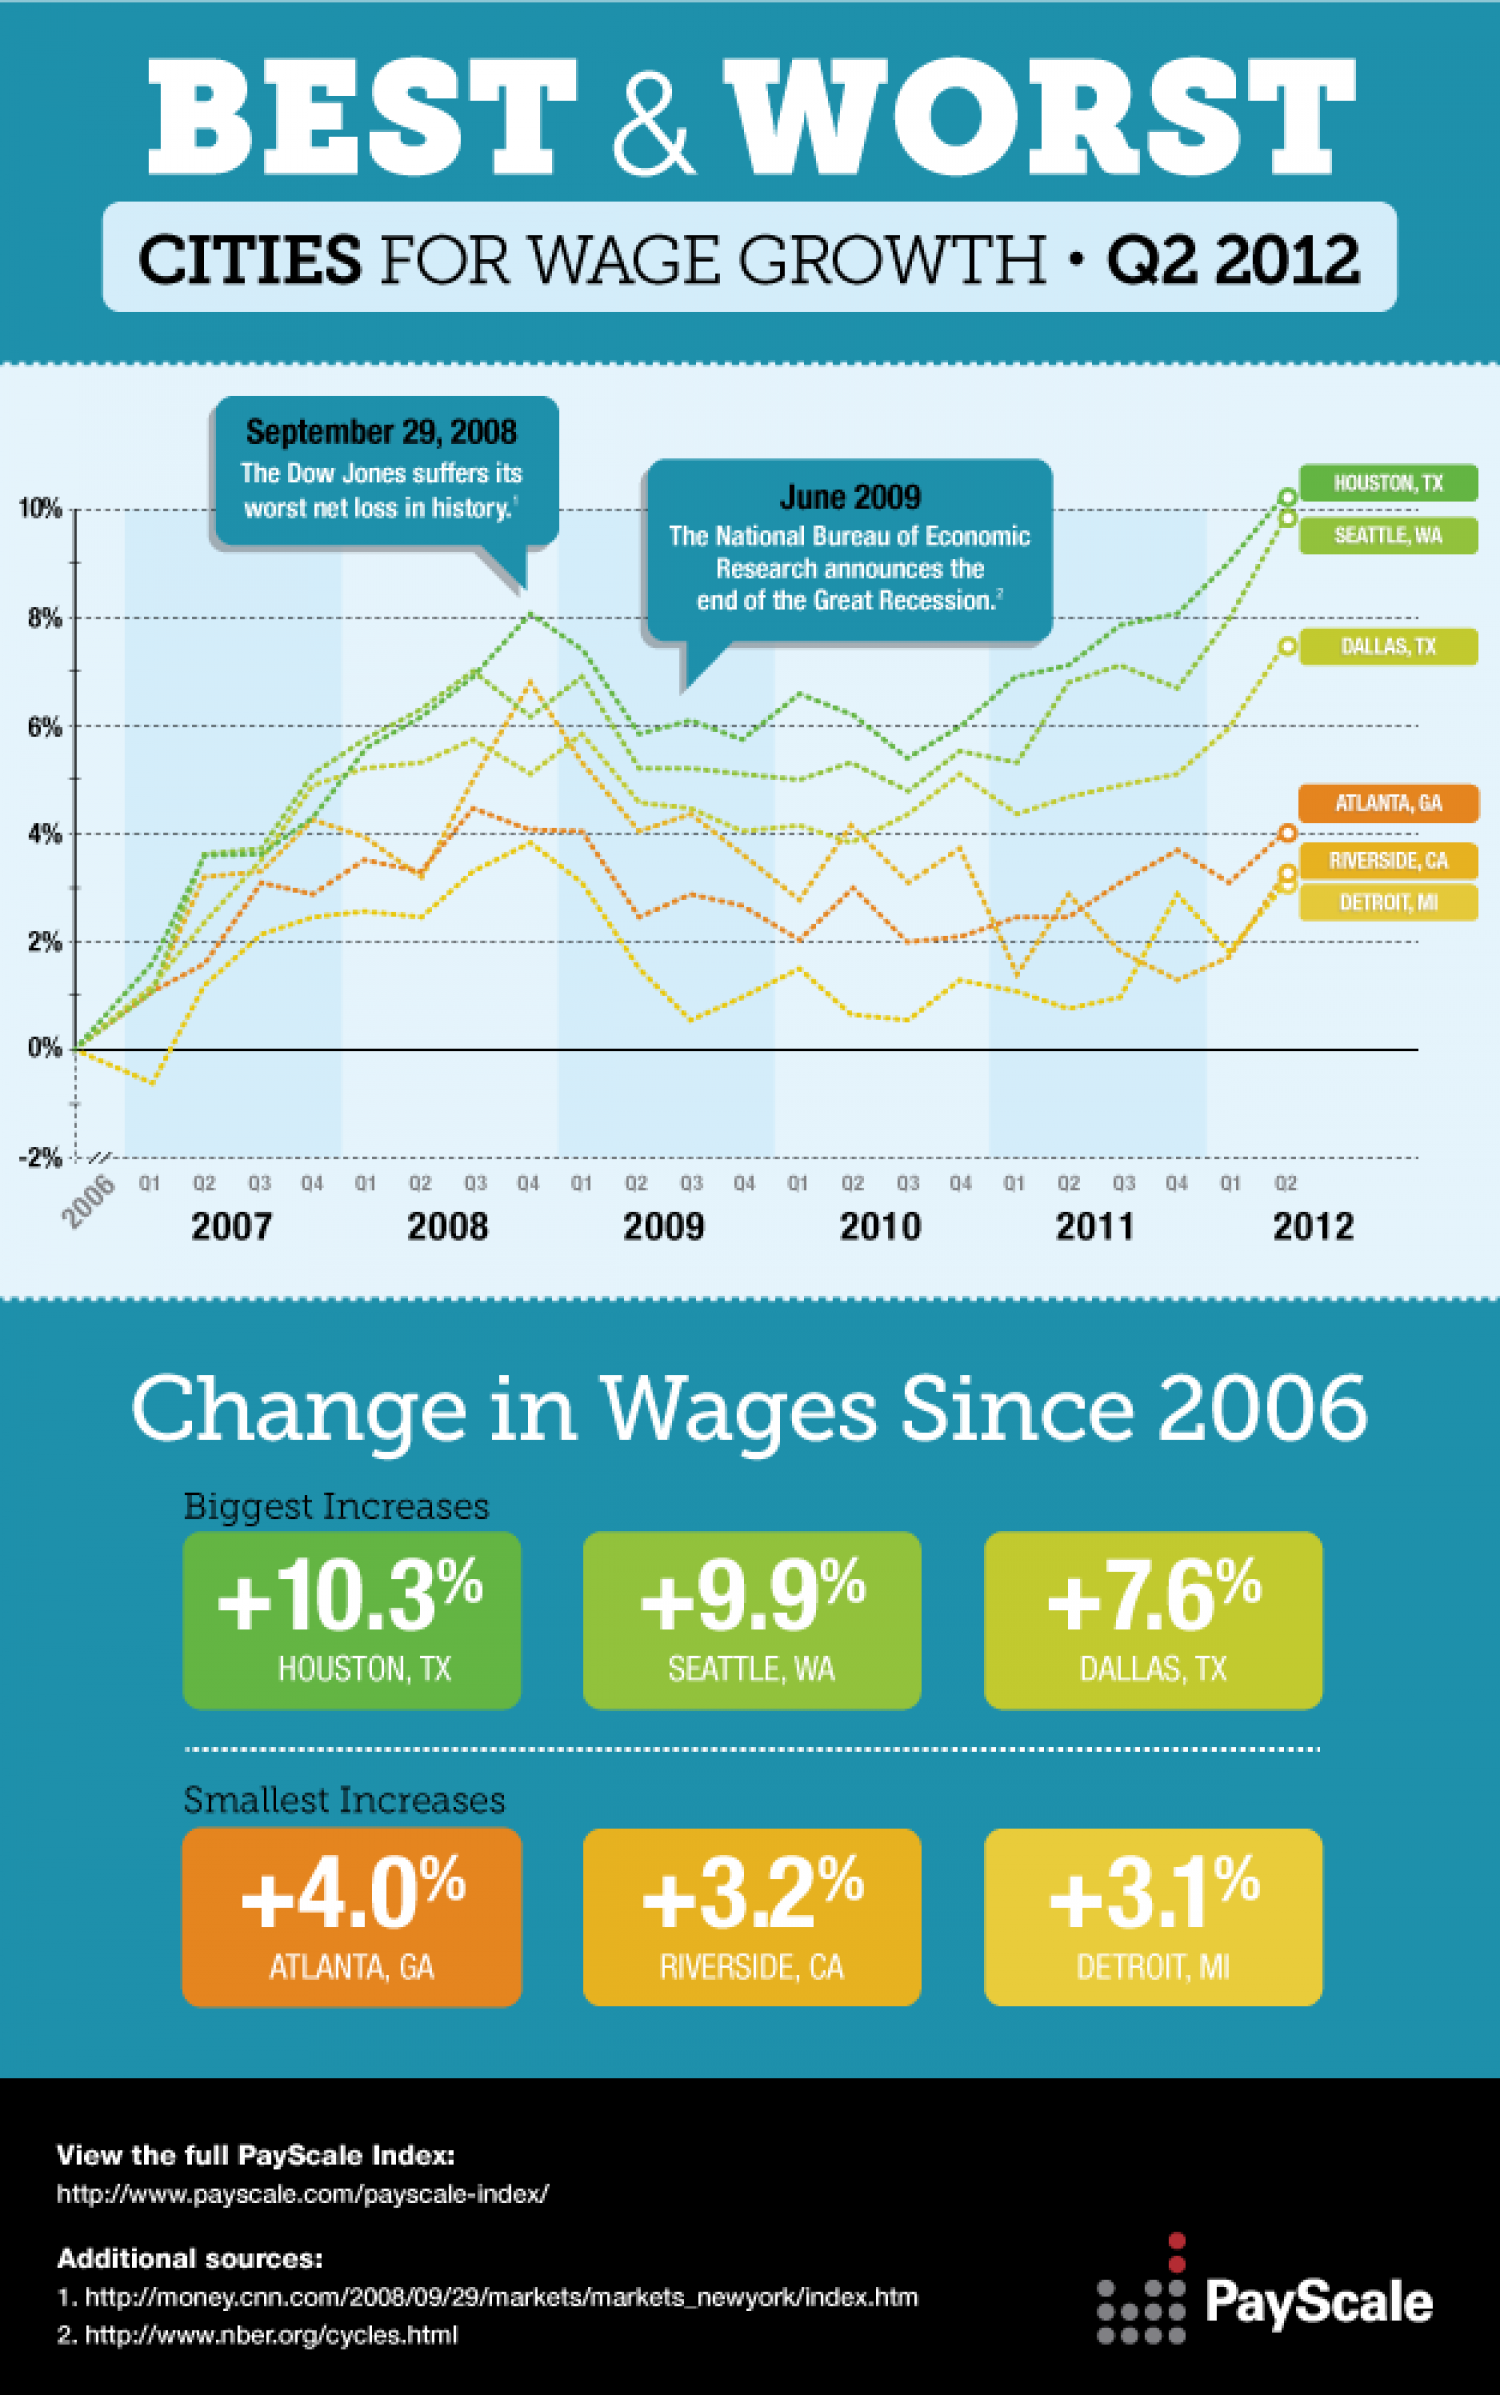 Best & Worst Cities for Wage Growth (Updated July 10, 2012) Infographic